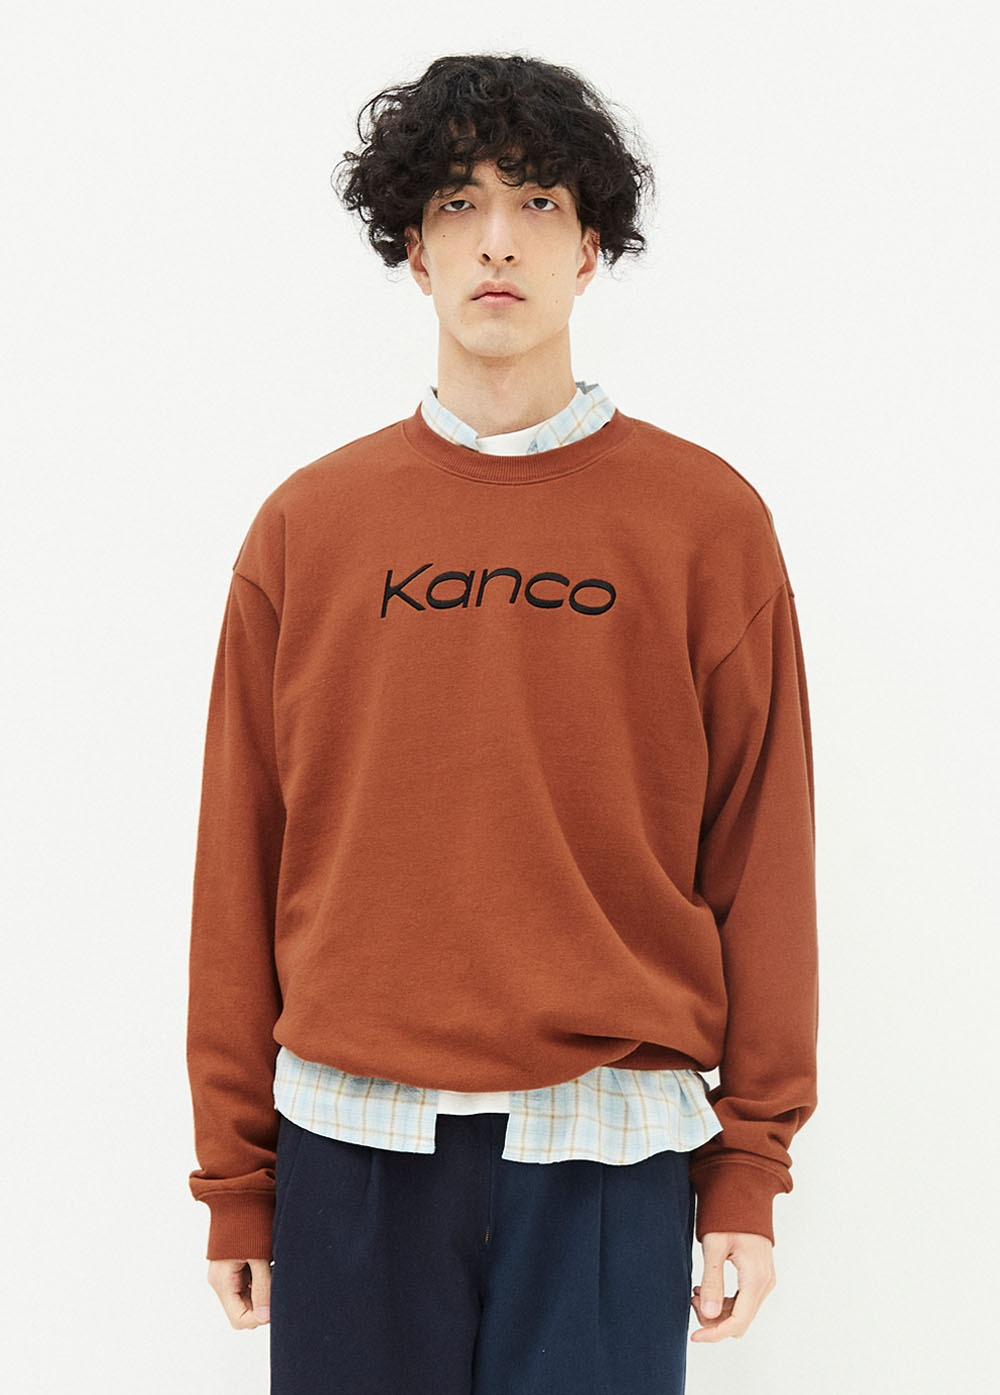 KANCO SERIF SWEATSHIRT brown